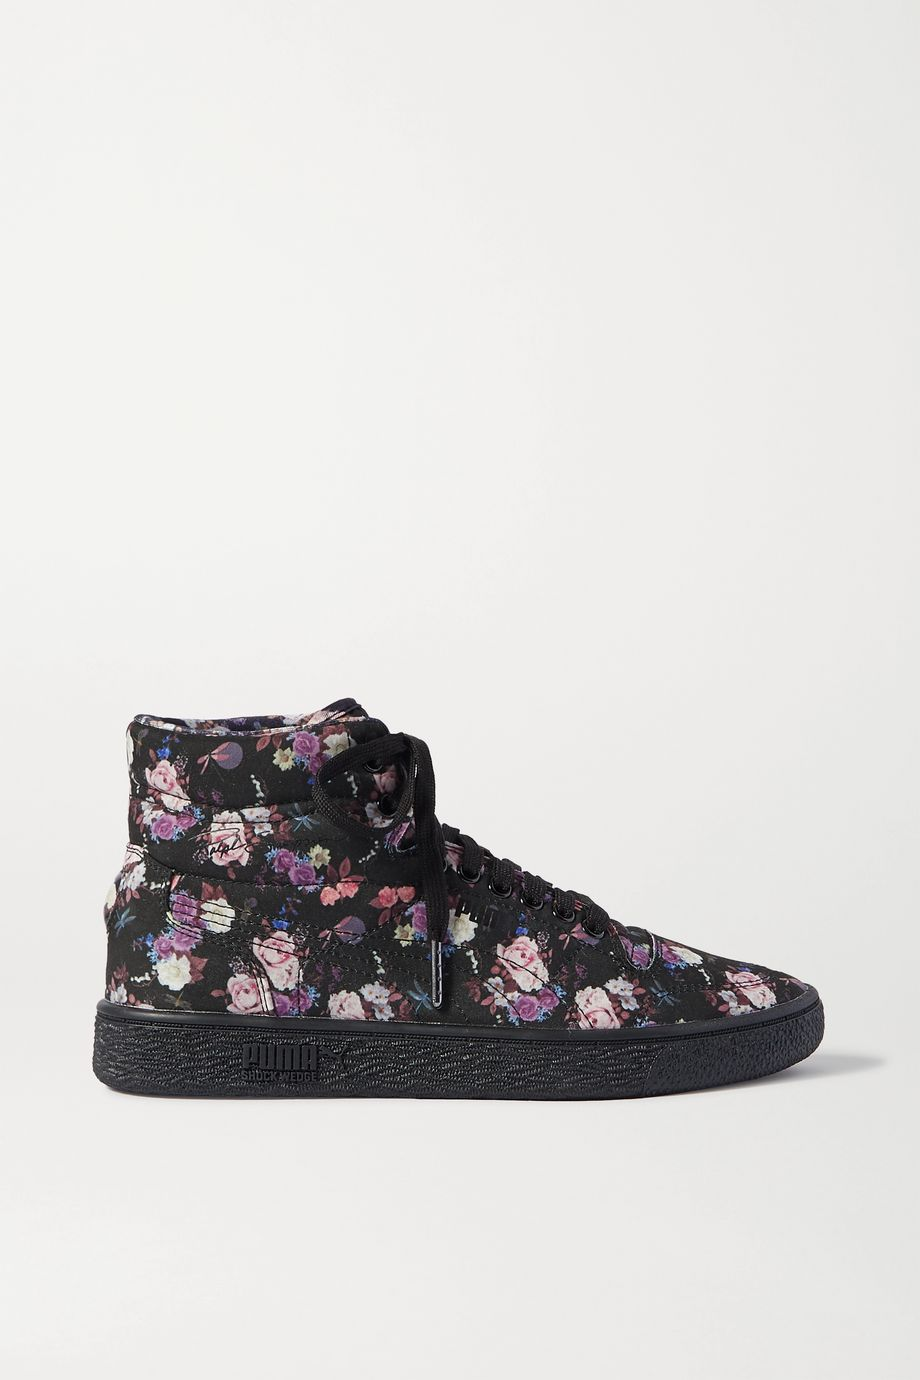 Tabitha Simmons + PUMA Ralph Sampson floral-print canvas high-top sneakers